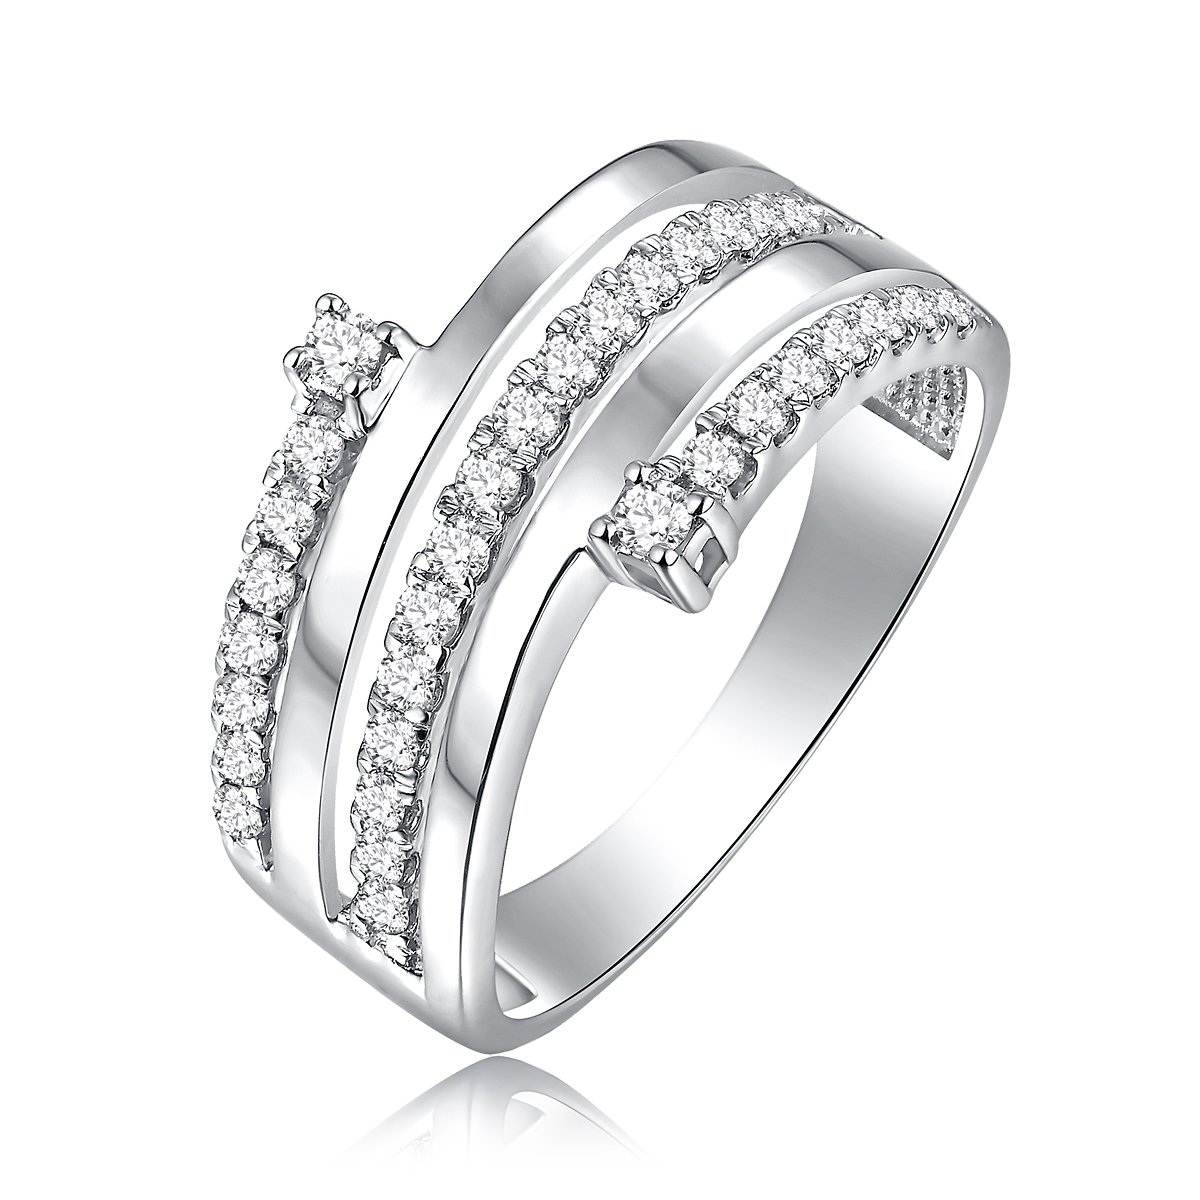 0.44 Carat Diamond 925 Sterling Silver Multi Row Promise Ring Size 7 (G-H Color, SI2-SI3 Clarity)